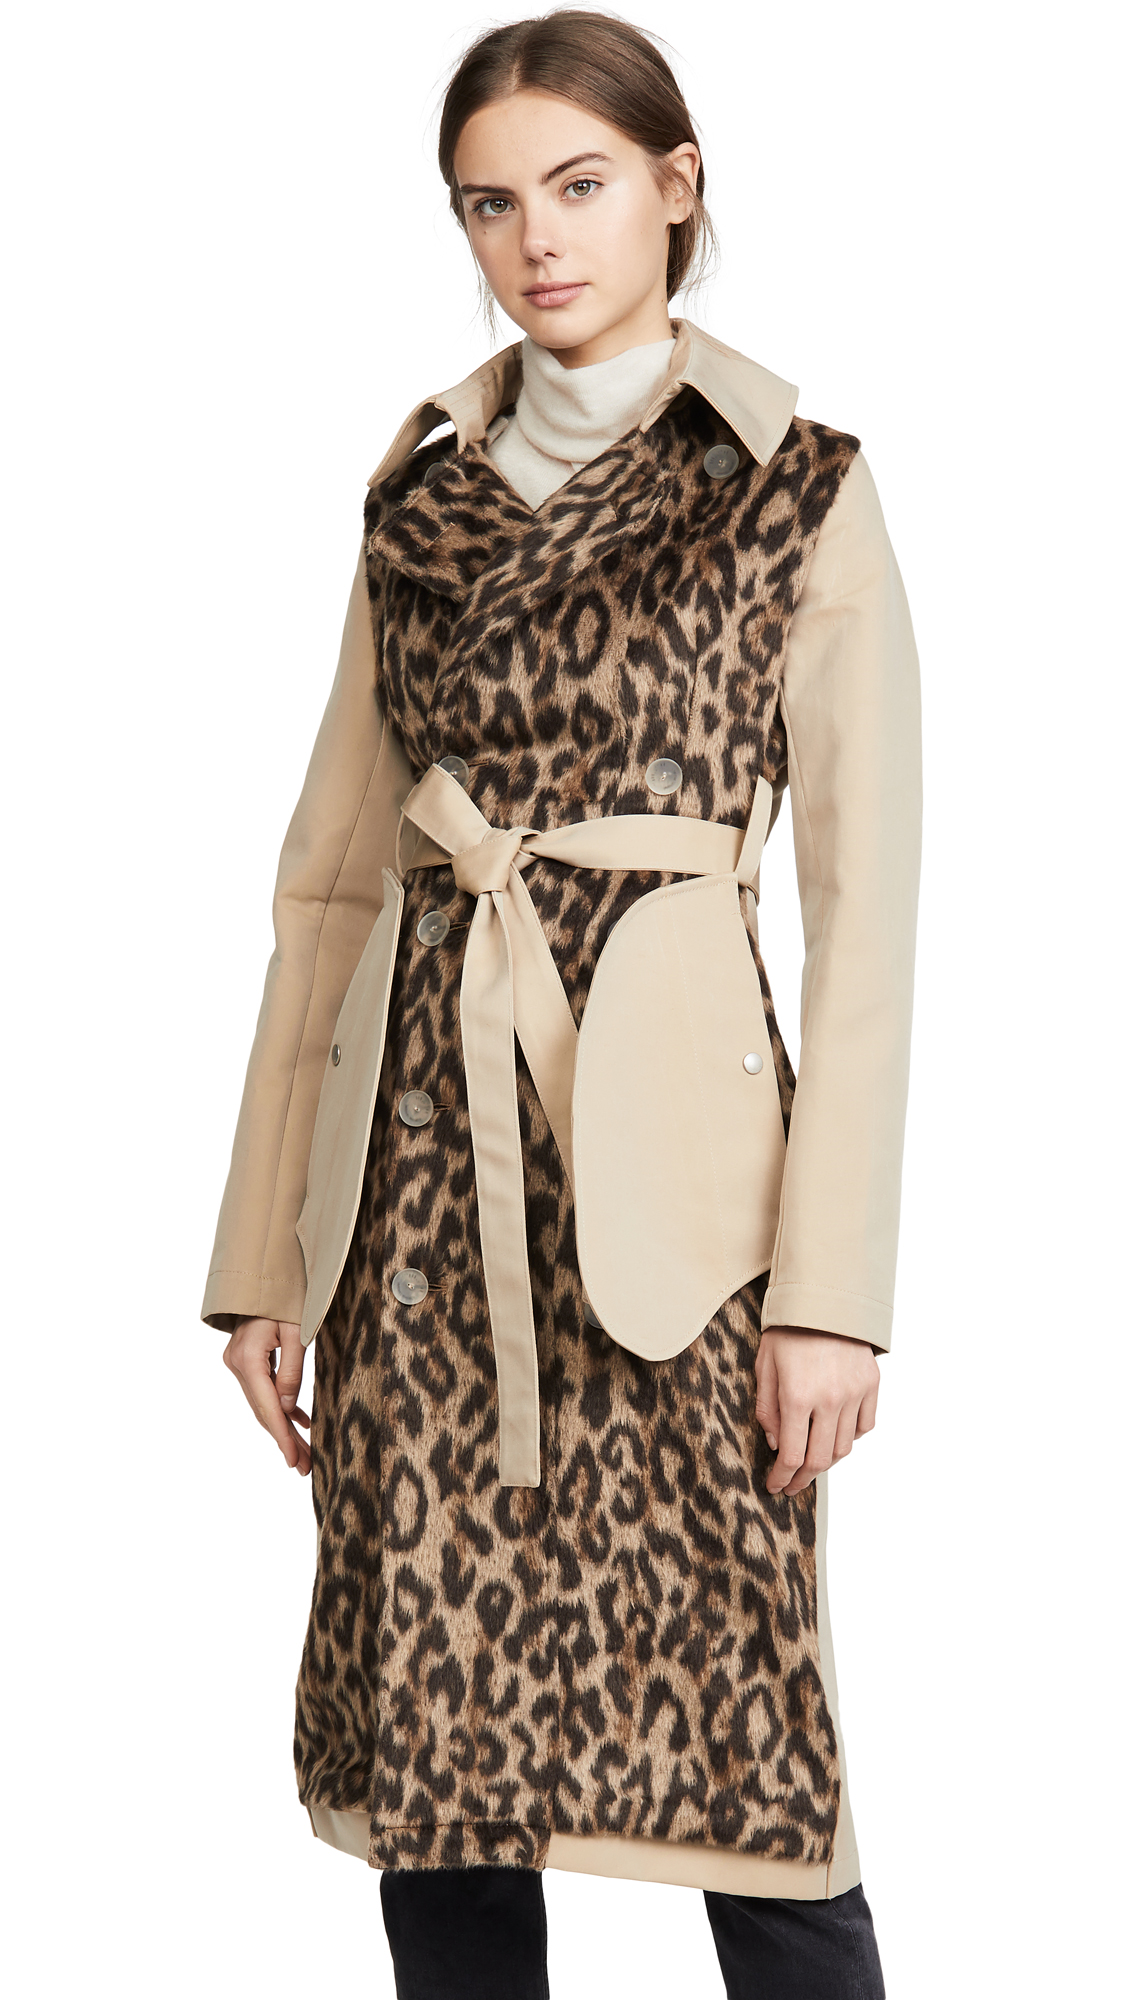 Buy Unravel Project Reverse Trench online beautiful Unravel Project Jackets, Coats, Trench Coats